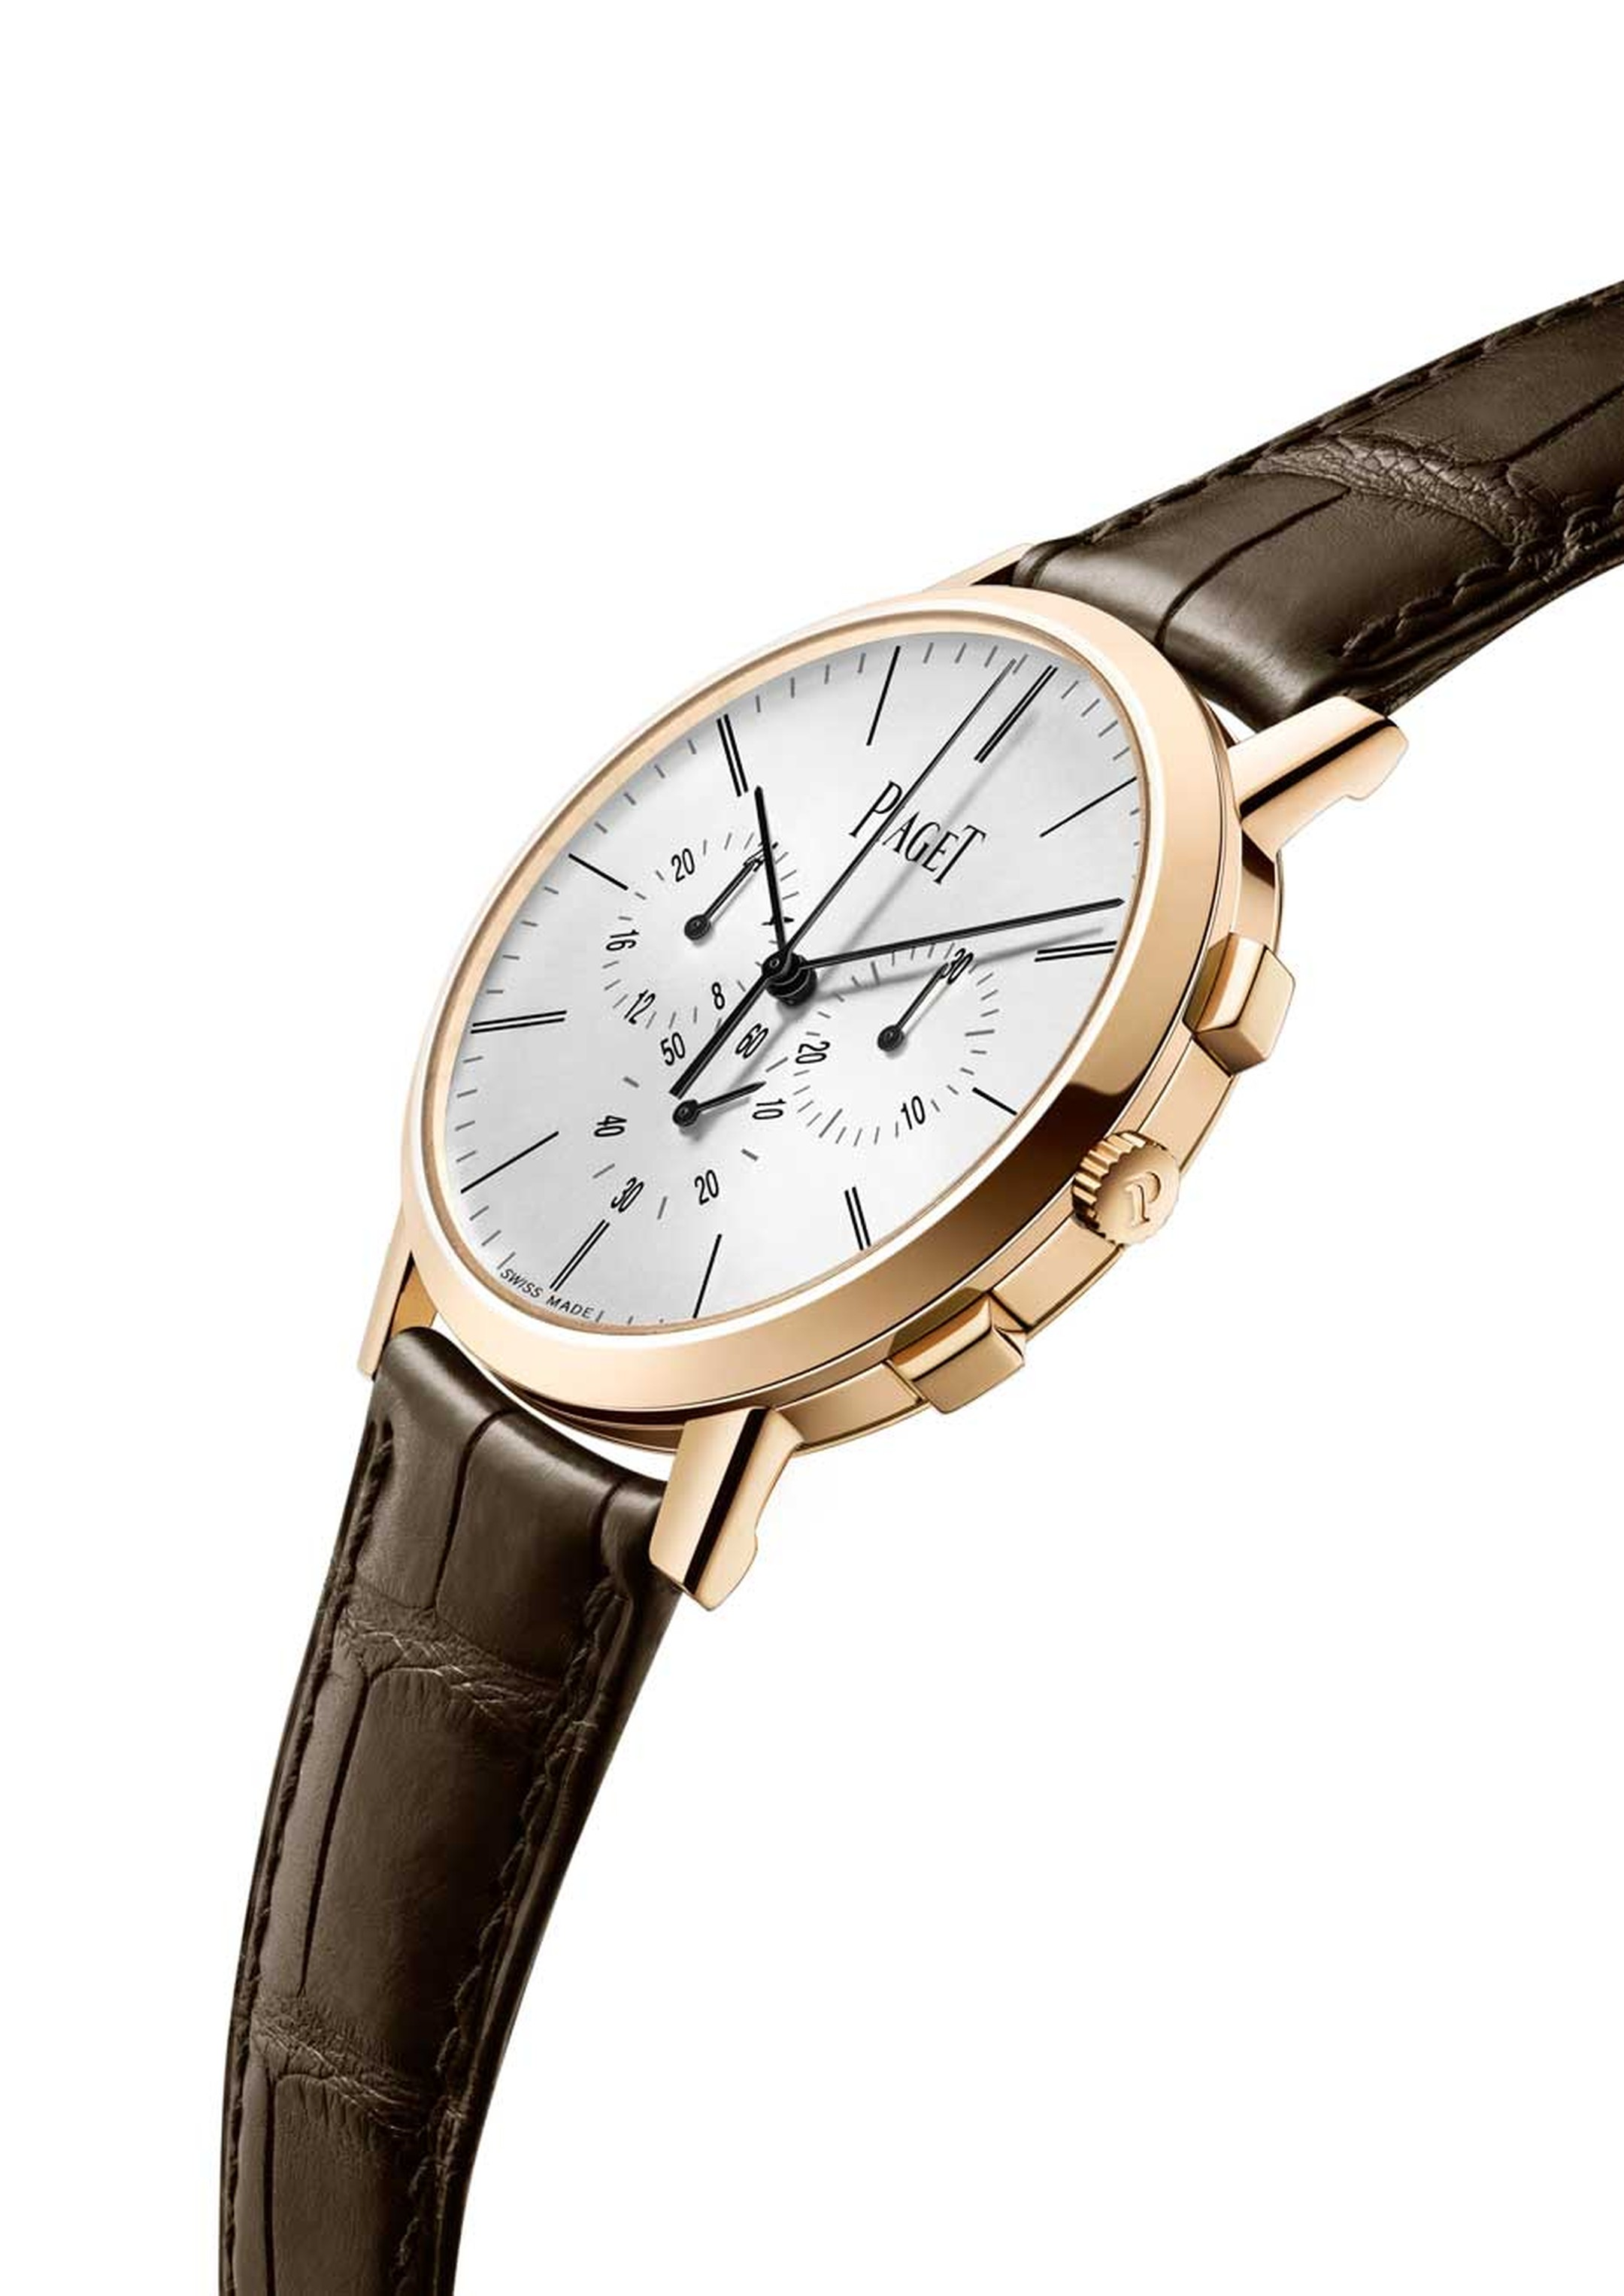 Piaget has gained a reputation for its record-breaking, ultra-thin movements and elegant watches since 1956. This year the Piaget Altiplano Chronograph has just smashed two new records as the world's thinnest hand-wound flyback chronograph movement - at j